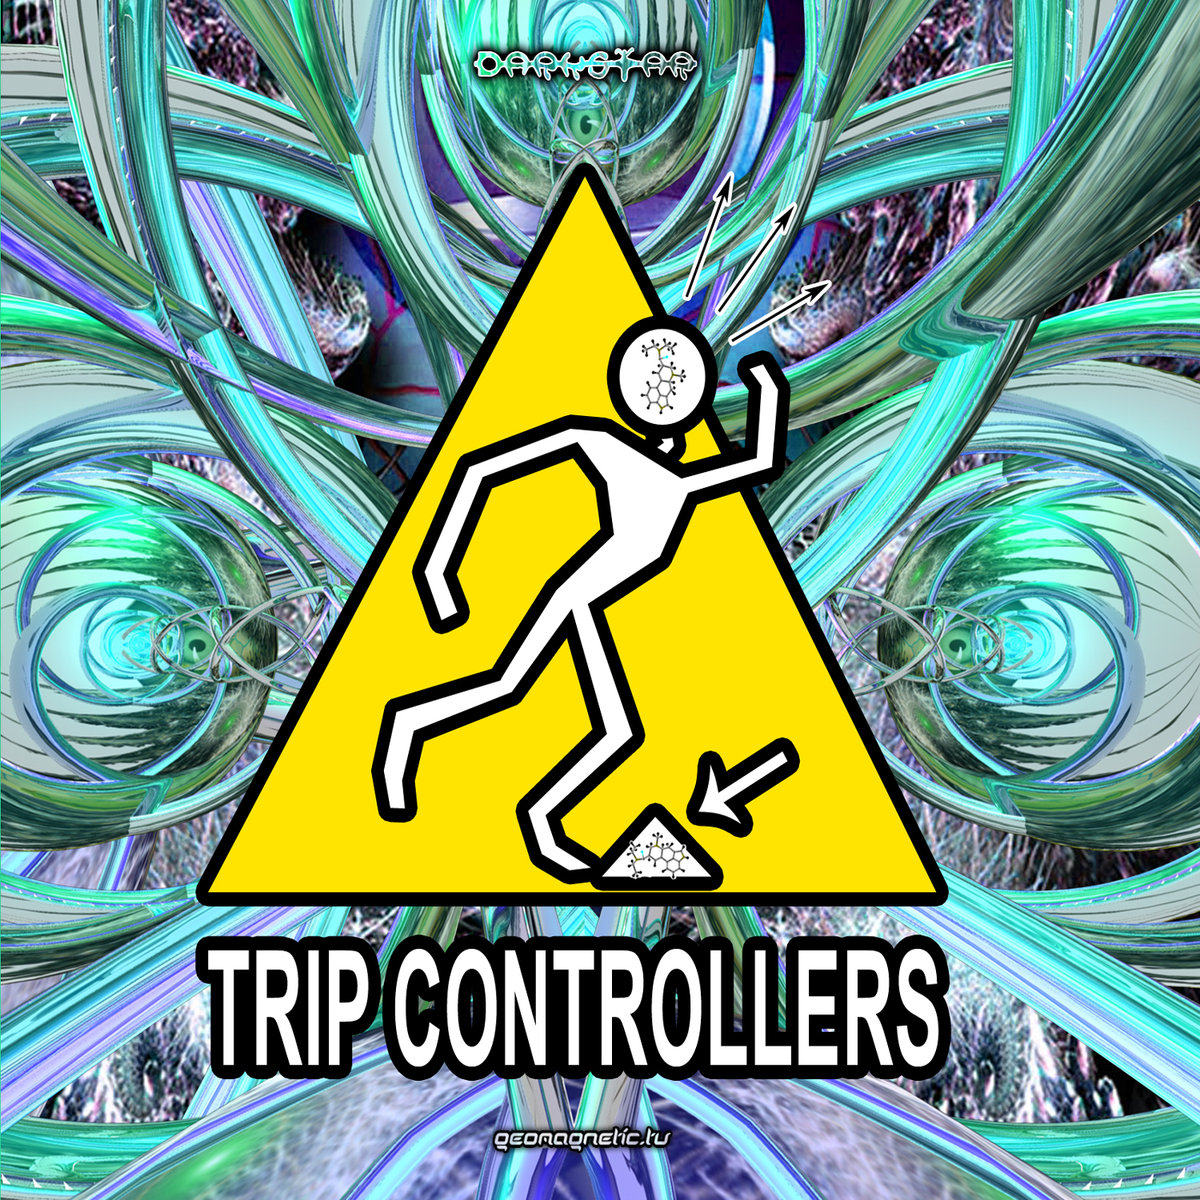 Various Artists - Trip Controllers (Compiled by Dr. Spook) @ 'Various Artists - Trip Controllers (Compiled by Dr. Spook)' album (electronic, goa)